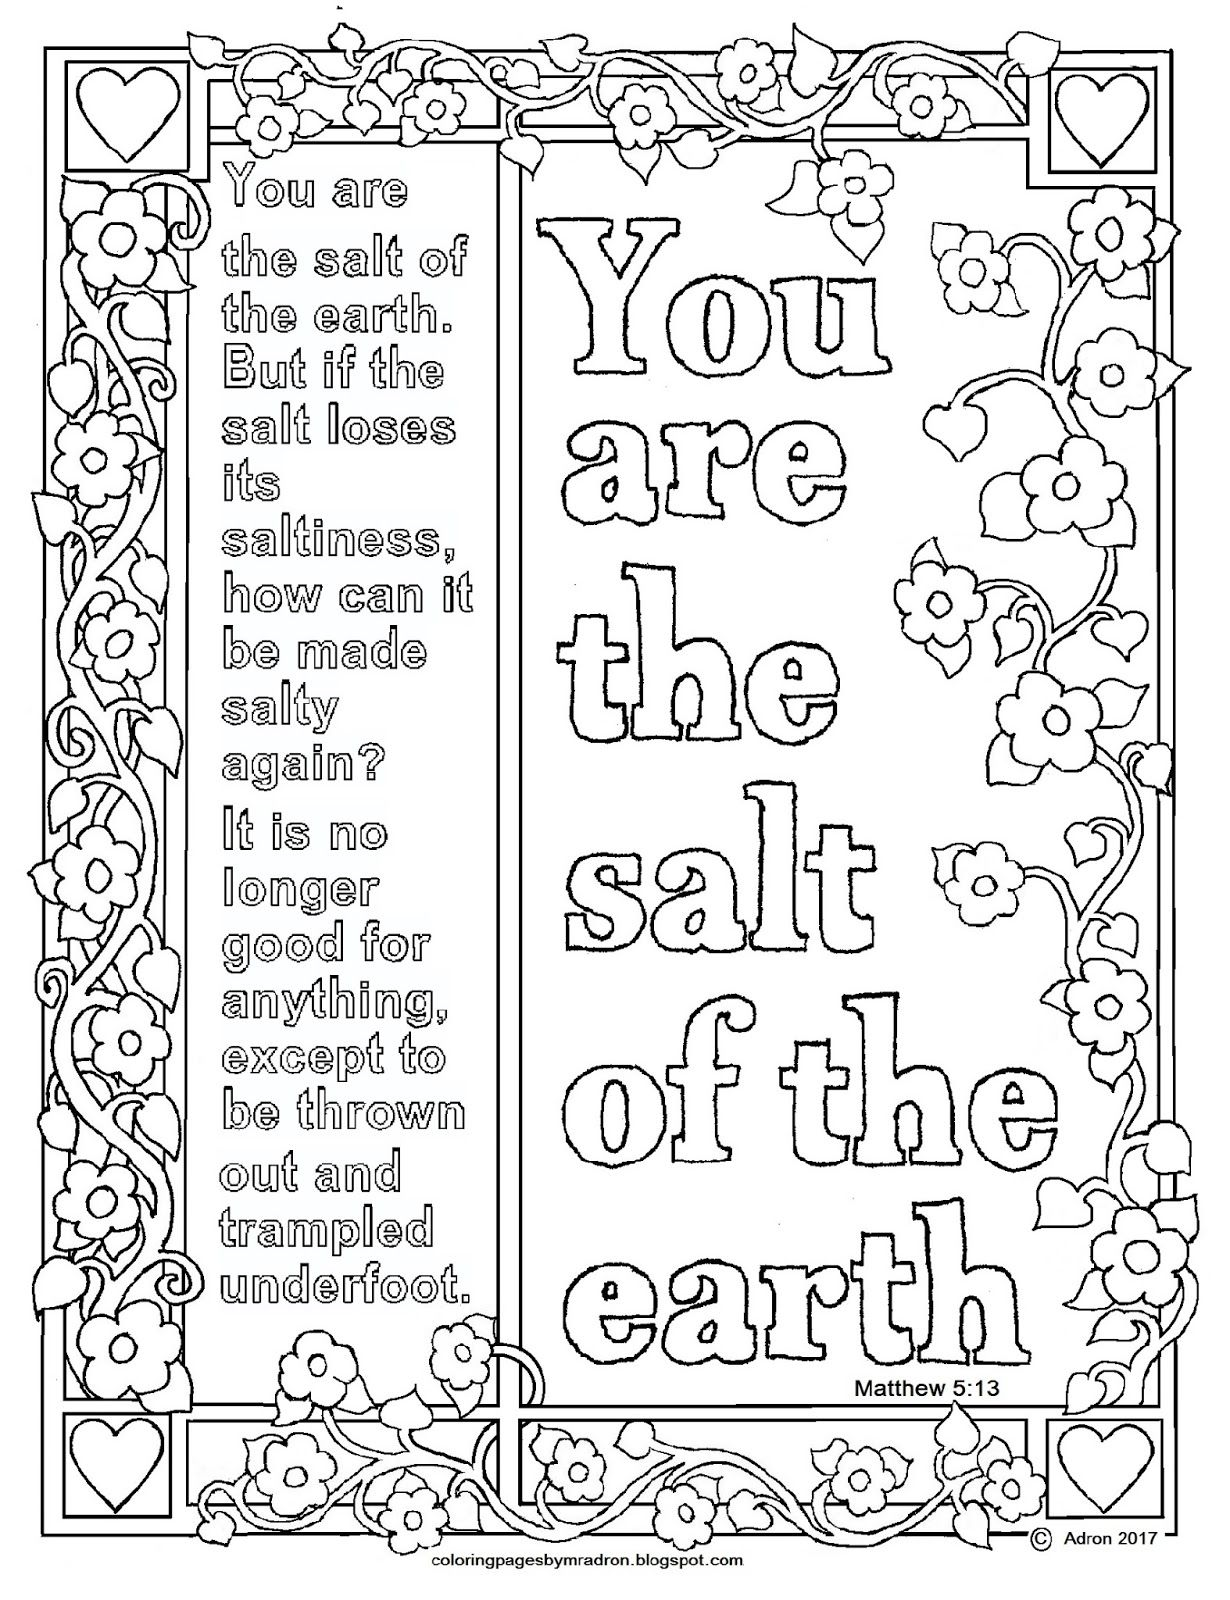 Matthew 5 13 Jpg 1 230 1 600 Pixels Coloring Pages For Kids